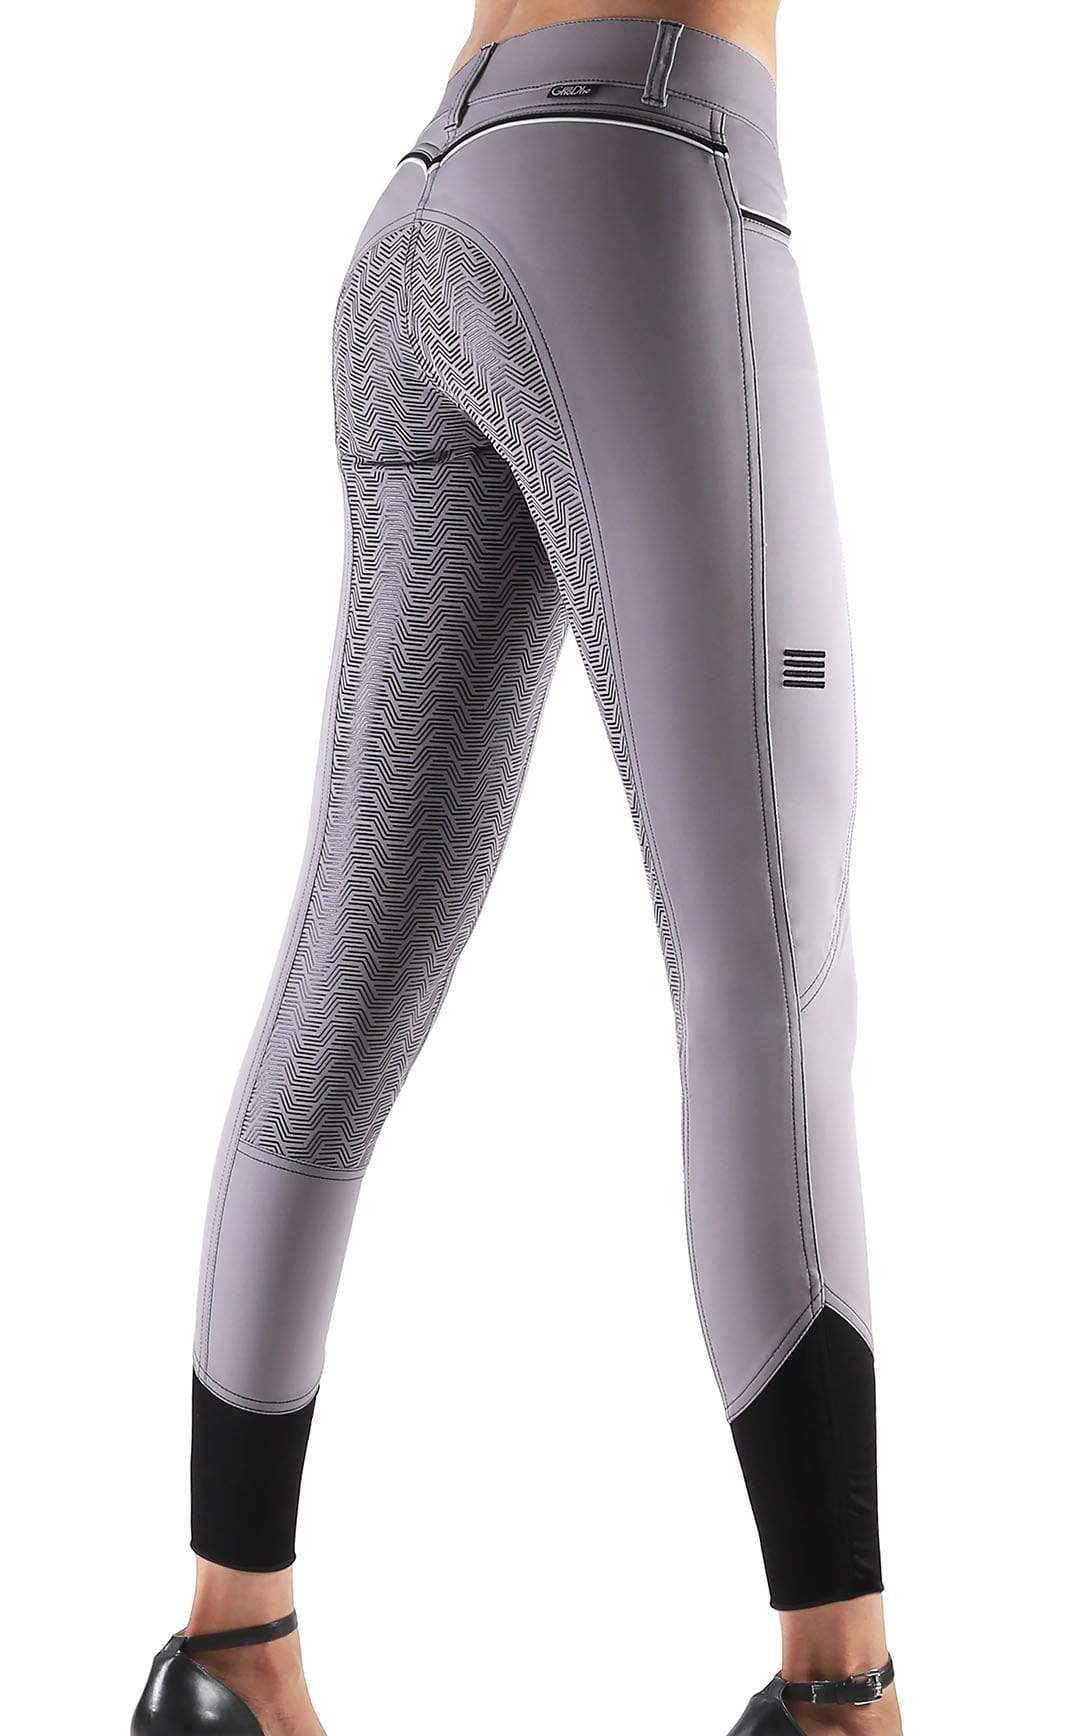 GhoDho Breeches sz 30 / light grey GhoDho Adena Full Seat Breeches equestrian team apparel online tack store mobile tack store custom farm apparel custom show stable clothing equestrian lifestyle horse show clothing riding clothes horses equestrian tack store